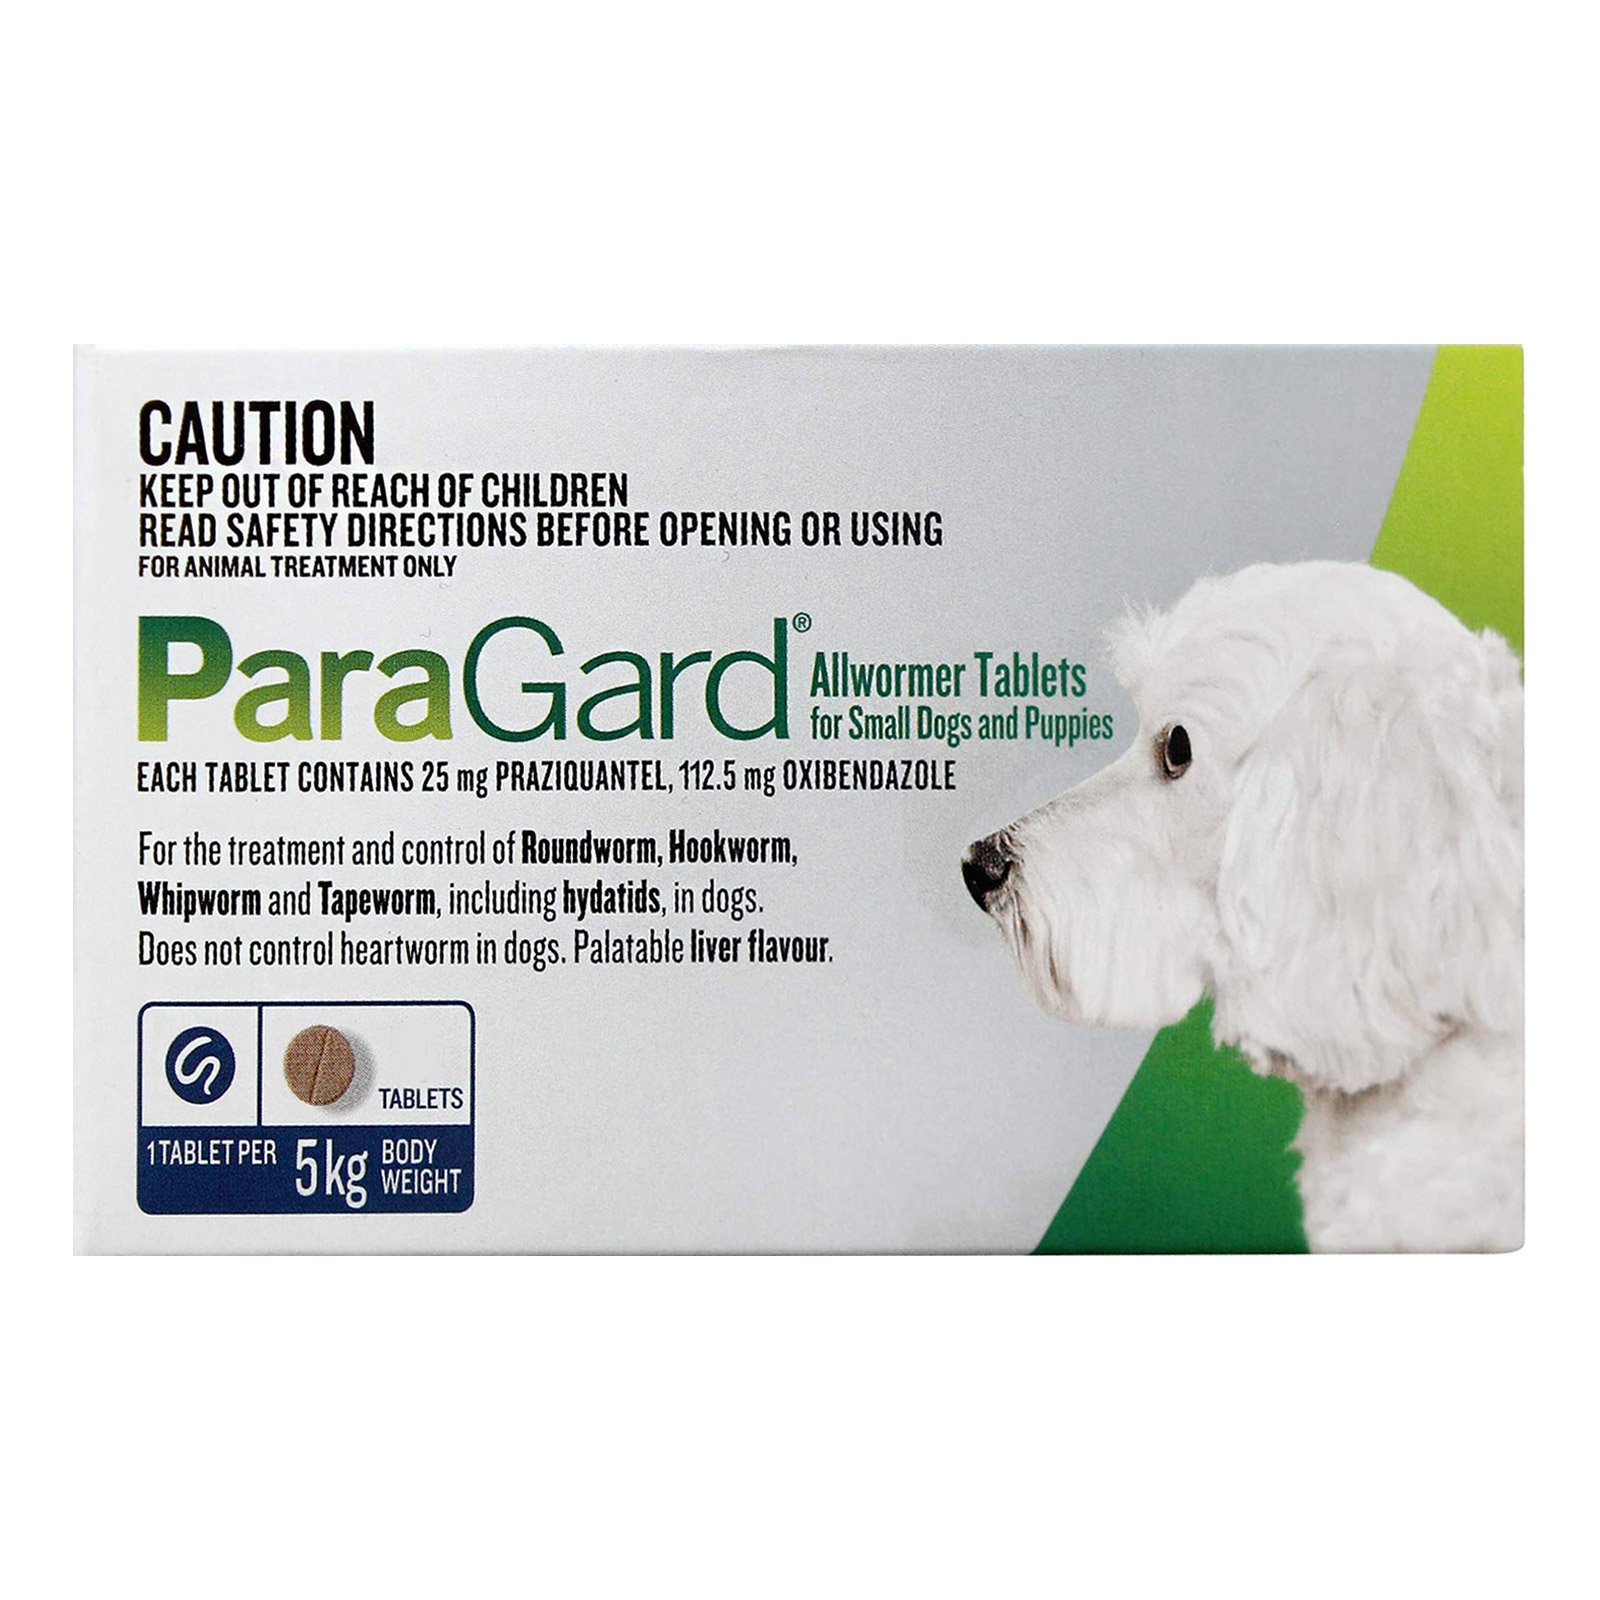 Paragard Allwormer for Dog Supplies